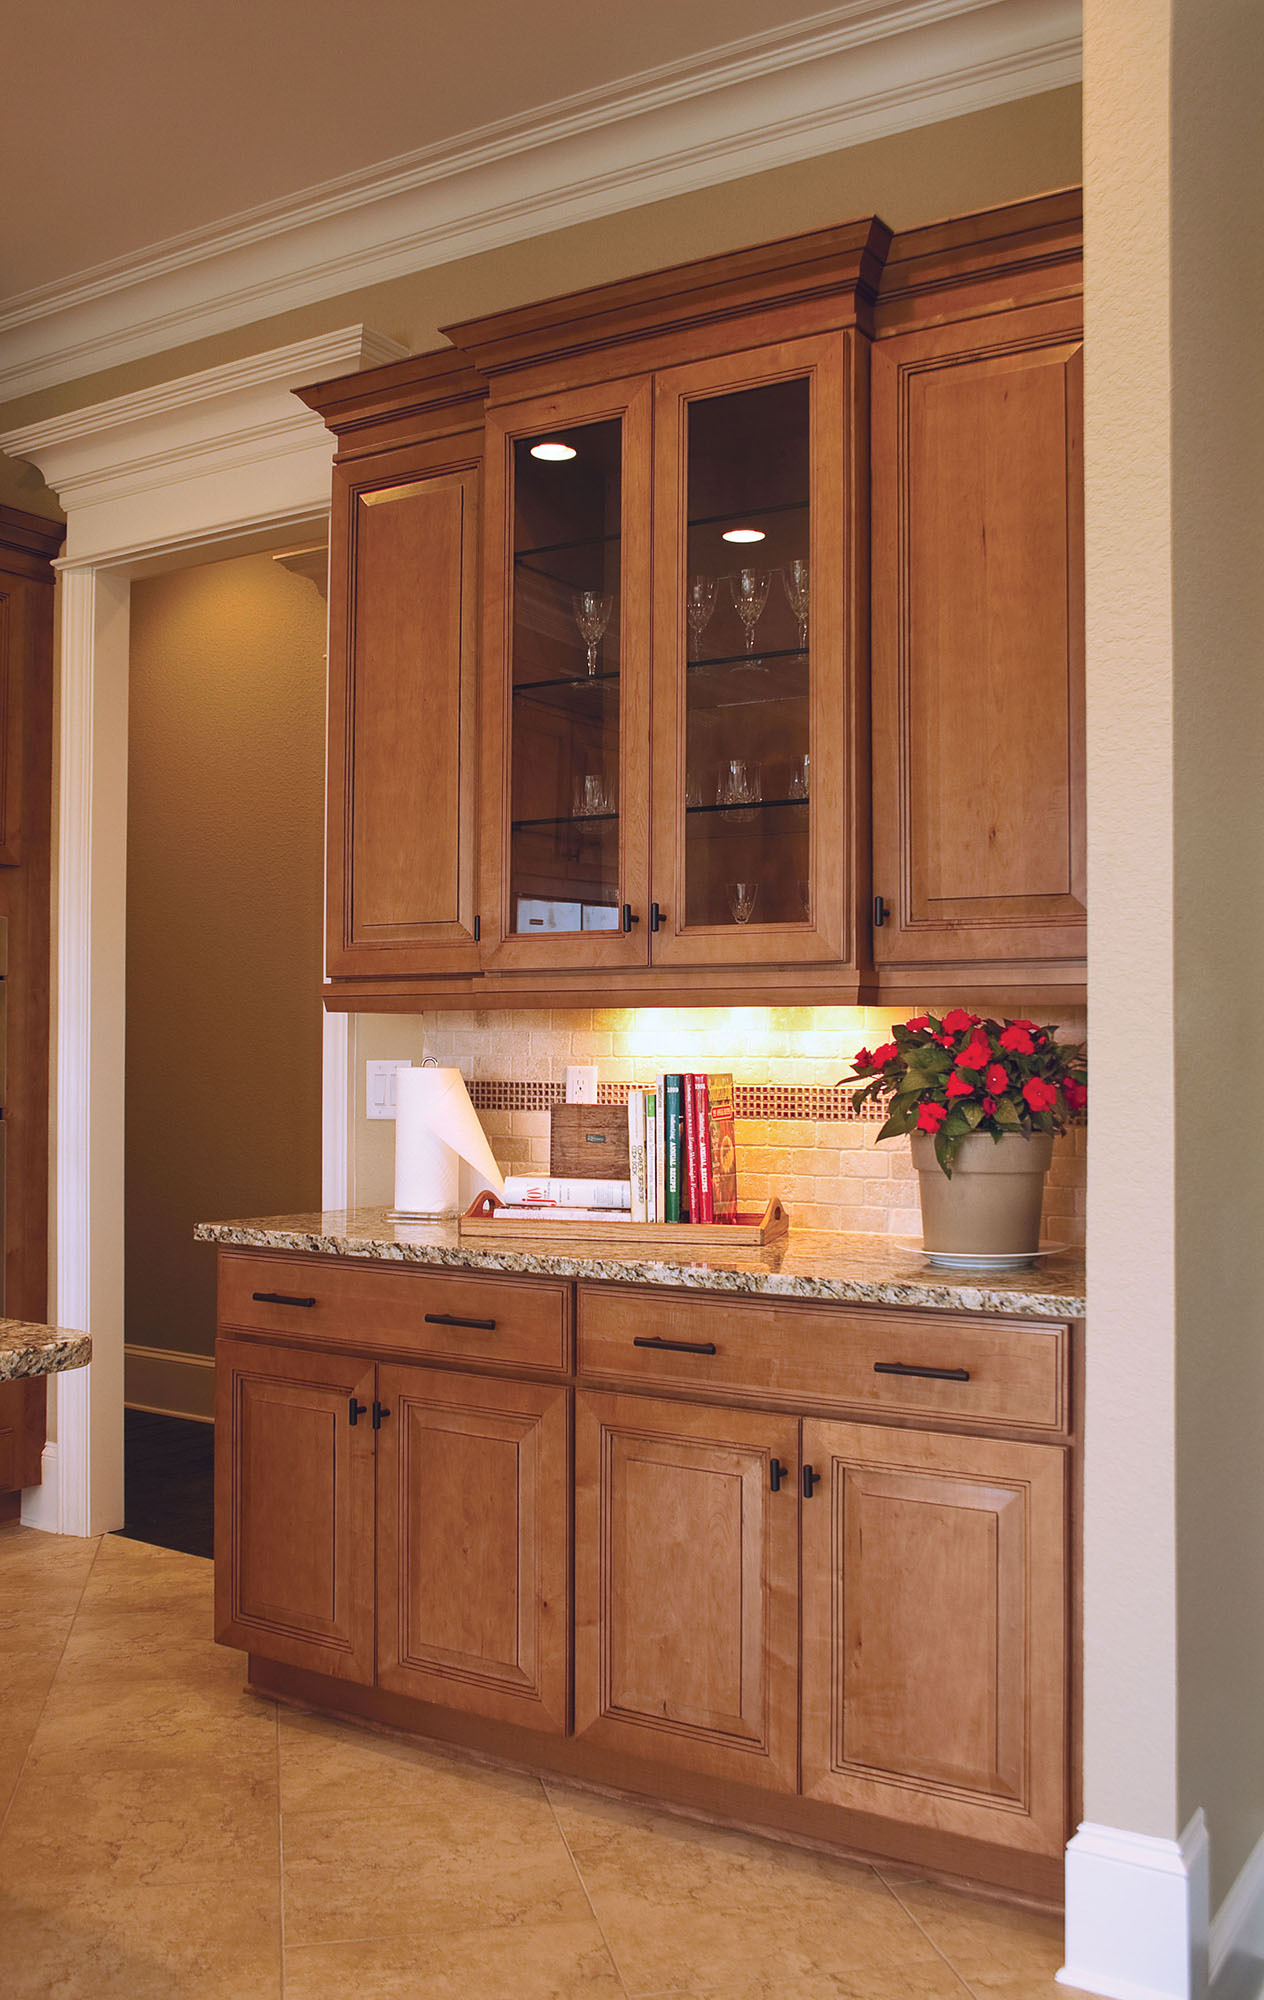 Cabinet Doors for Sale Lovely to Wire Mild to A Glass Kitchen Cabinet Doors